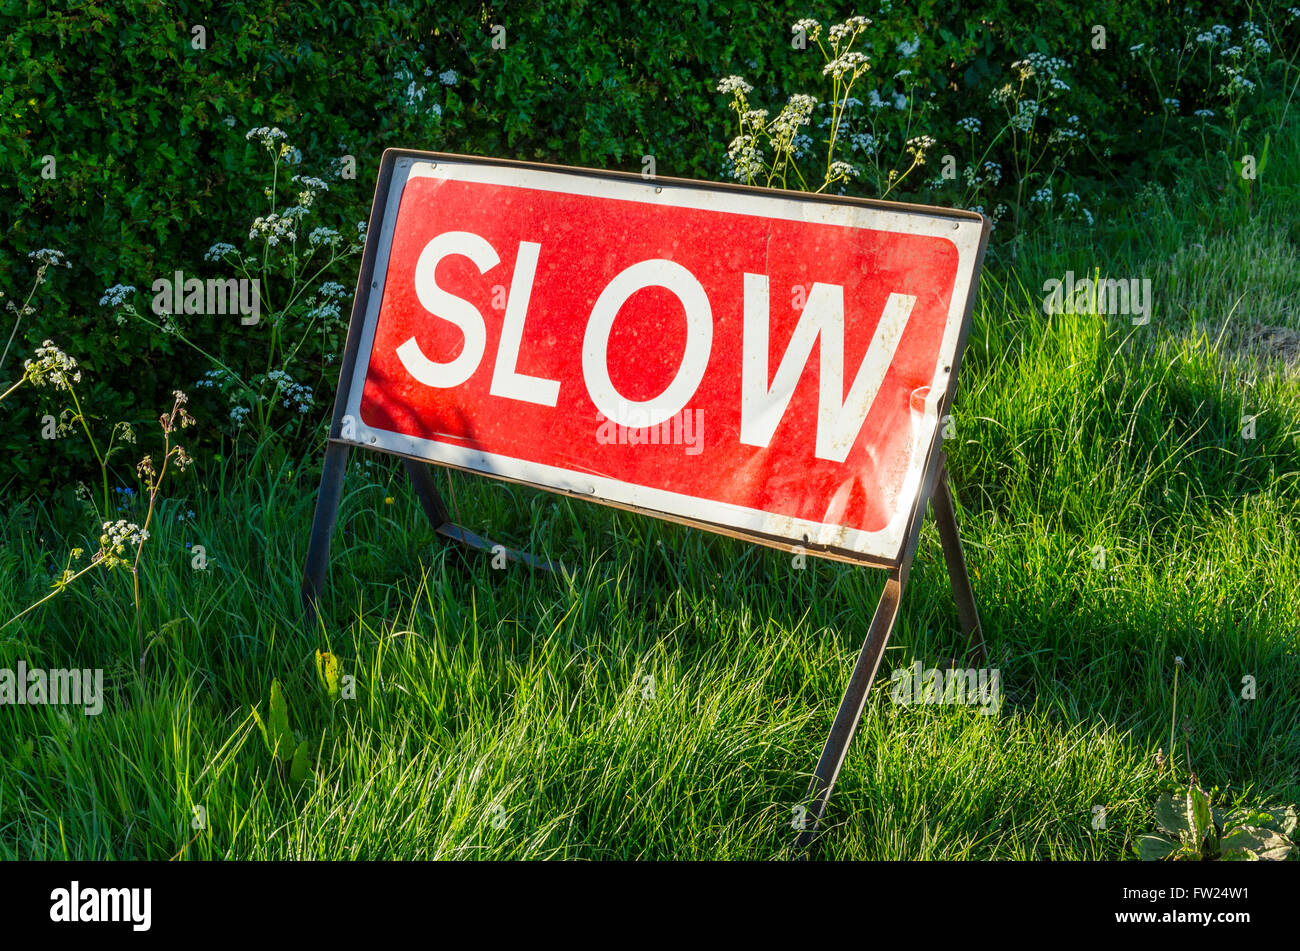 SLOW road sign in a grass verge on a country road - Stock Image